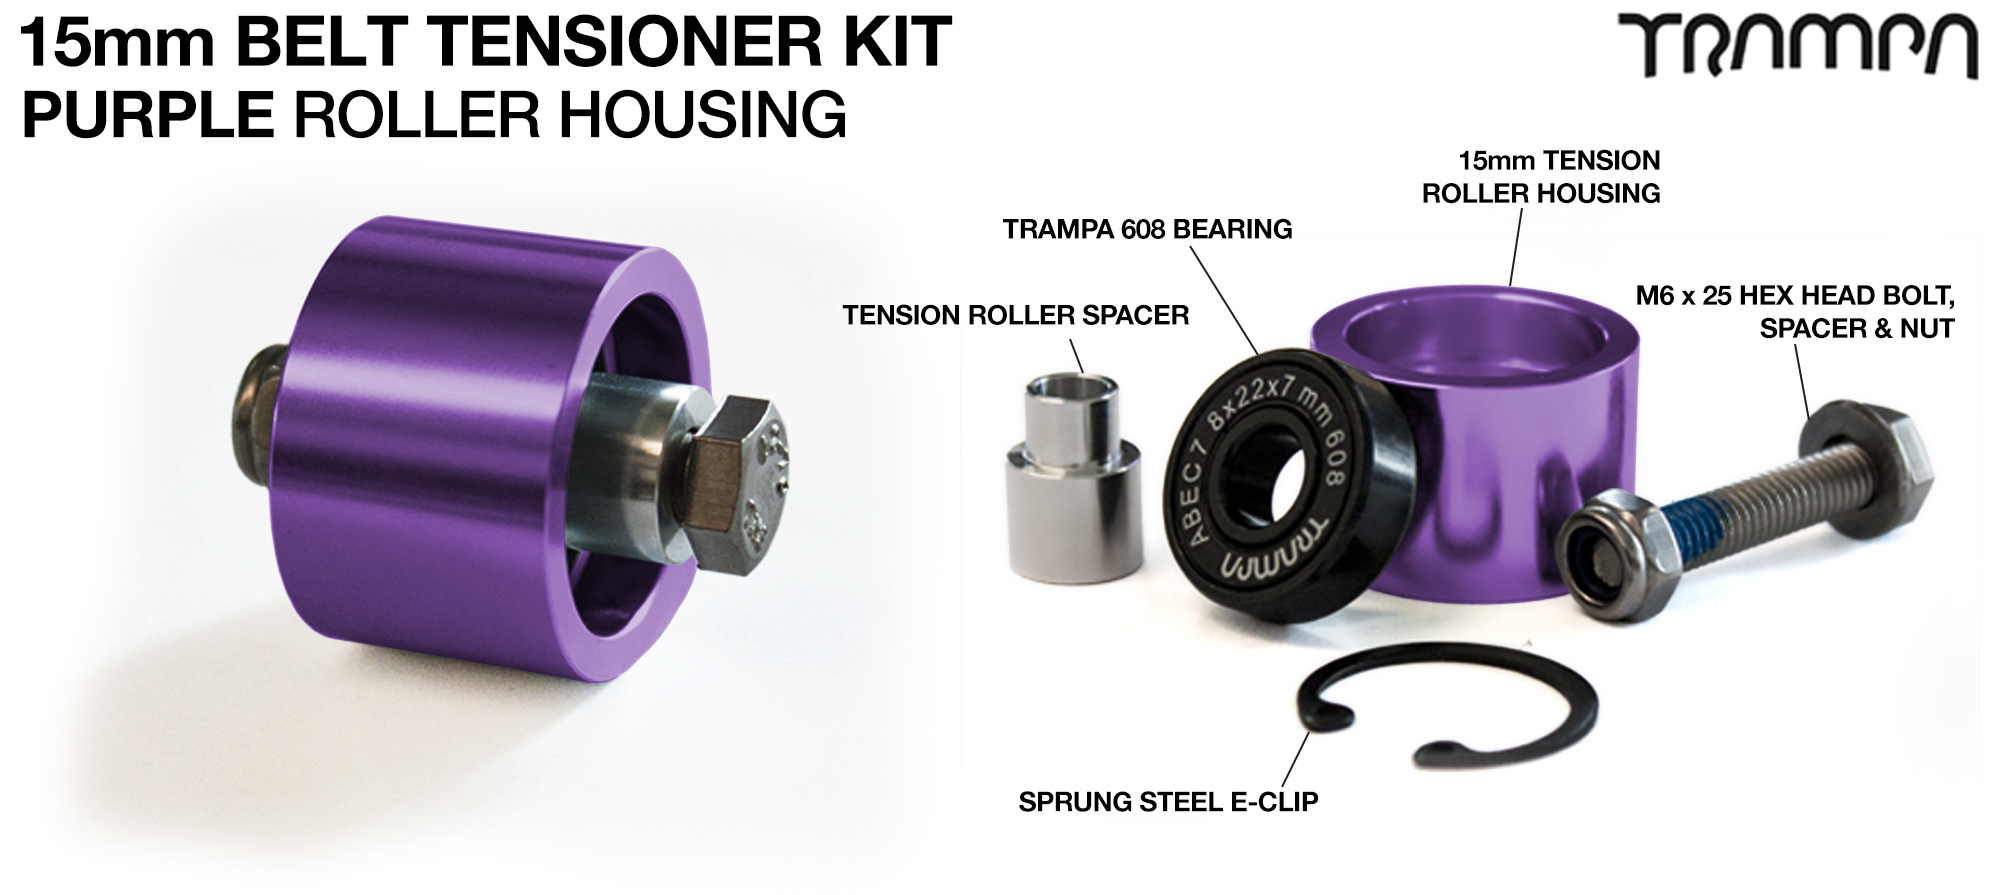 15mm Belt Tensioner - PURPLE